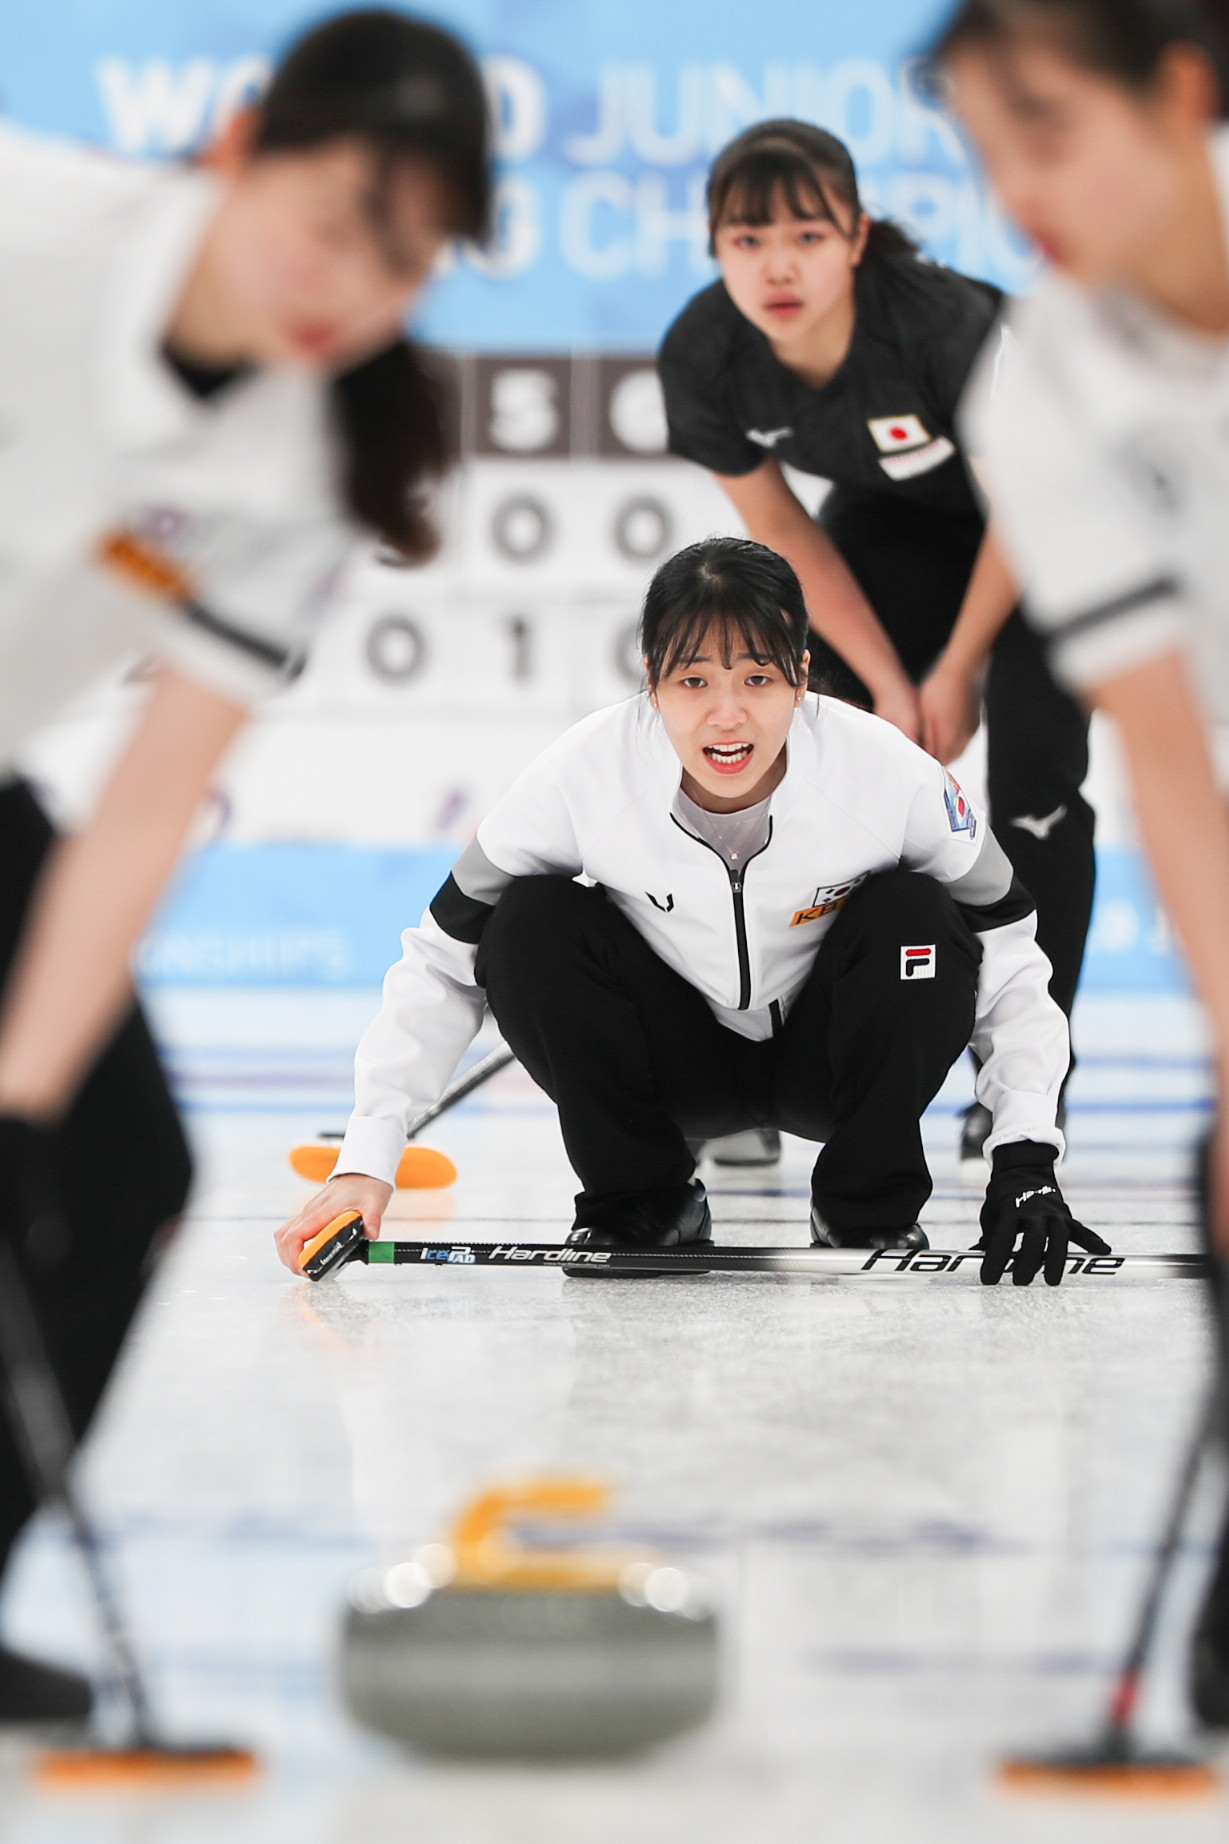 South Korea retain unbeaten record at World Junior Curling Championships as group matches end